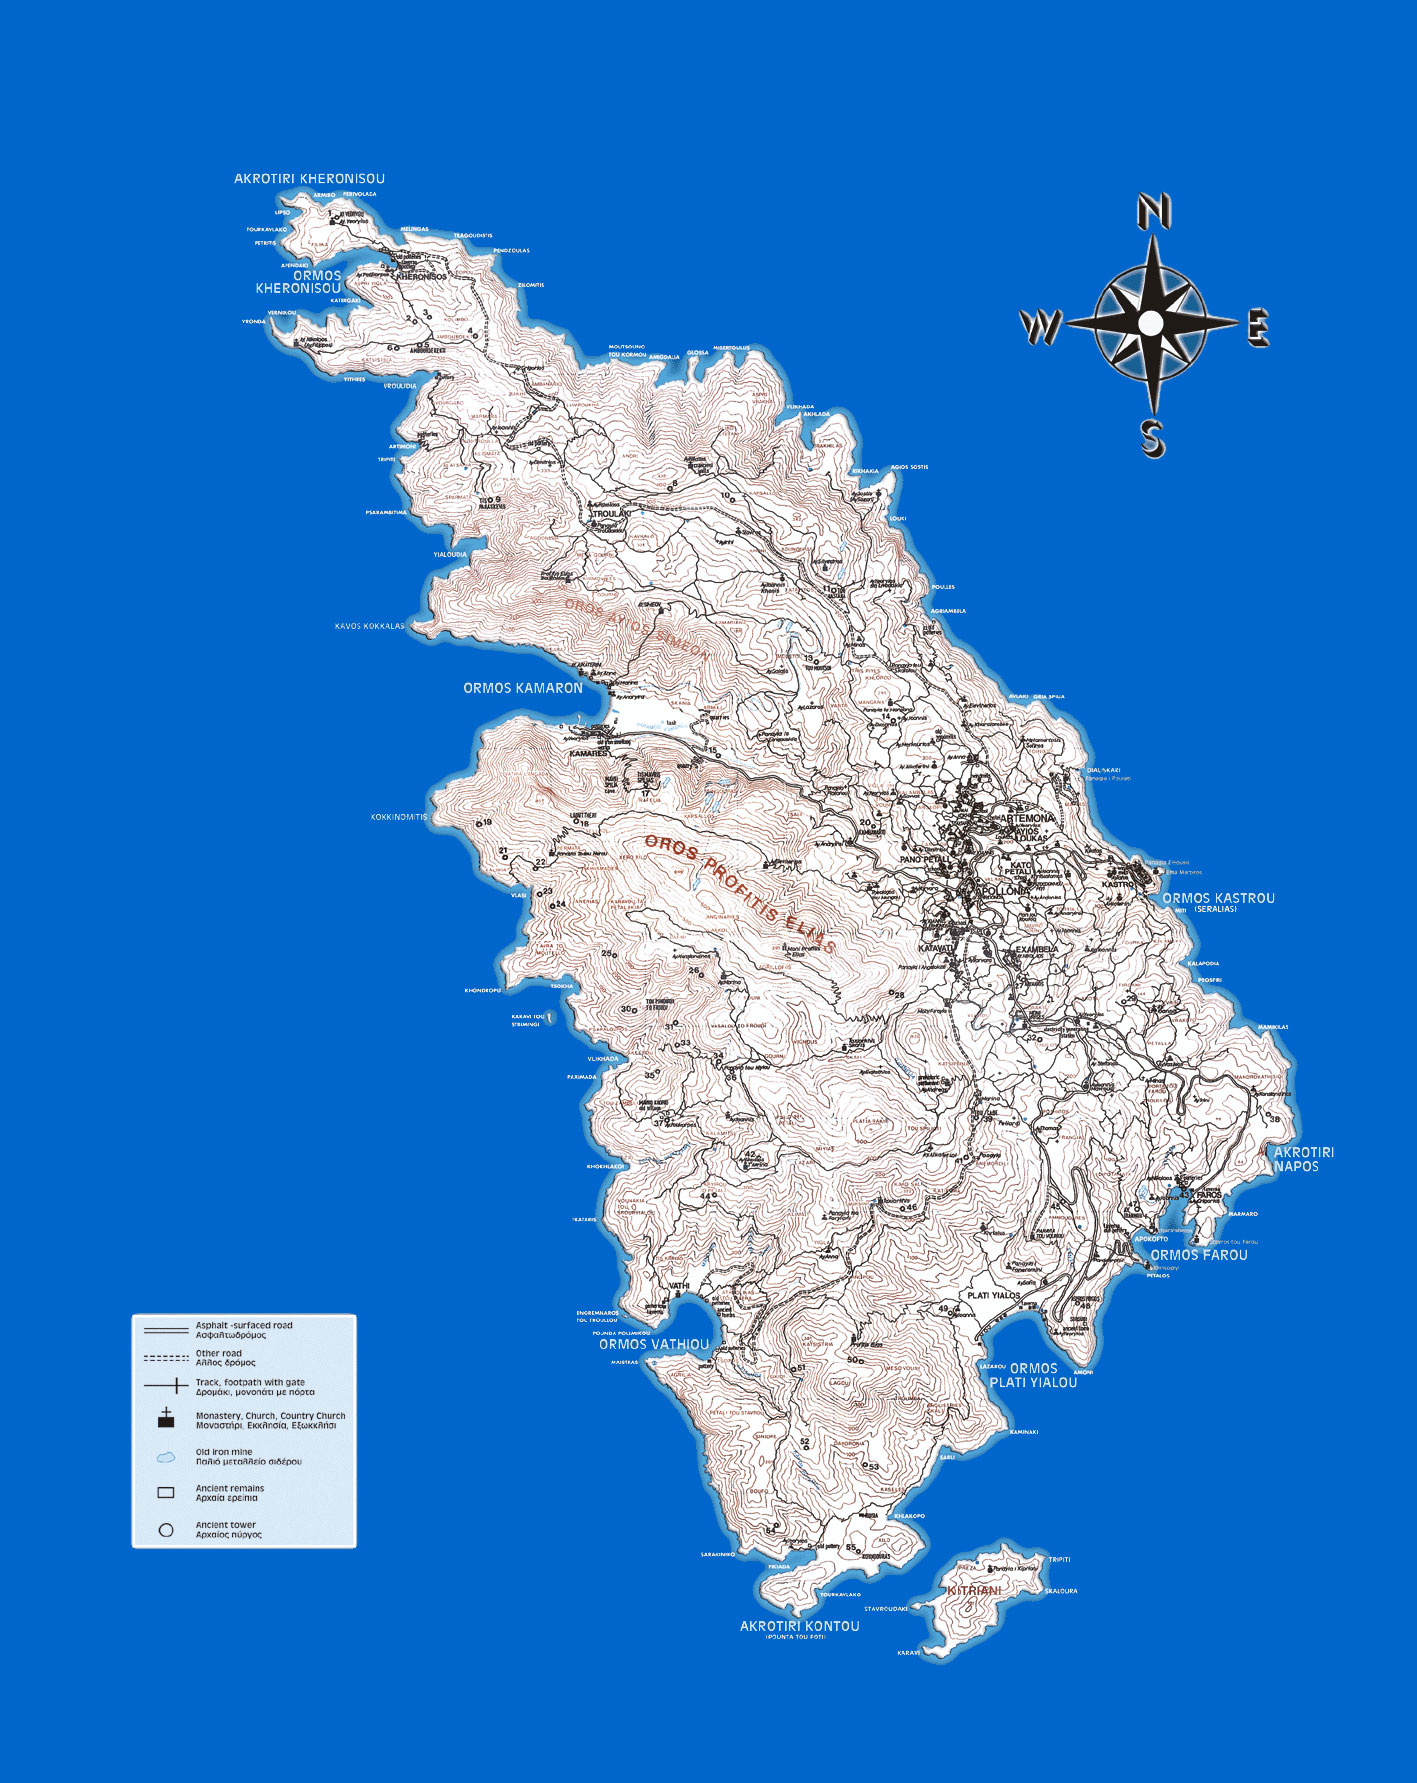 Sifnos' map of Trails